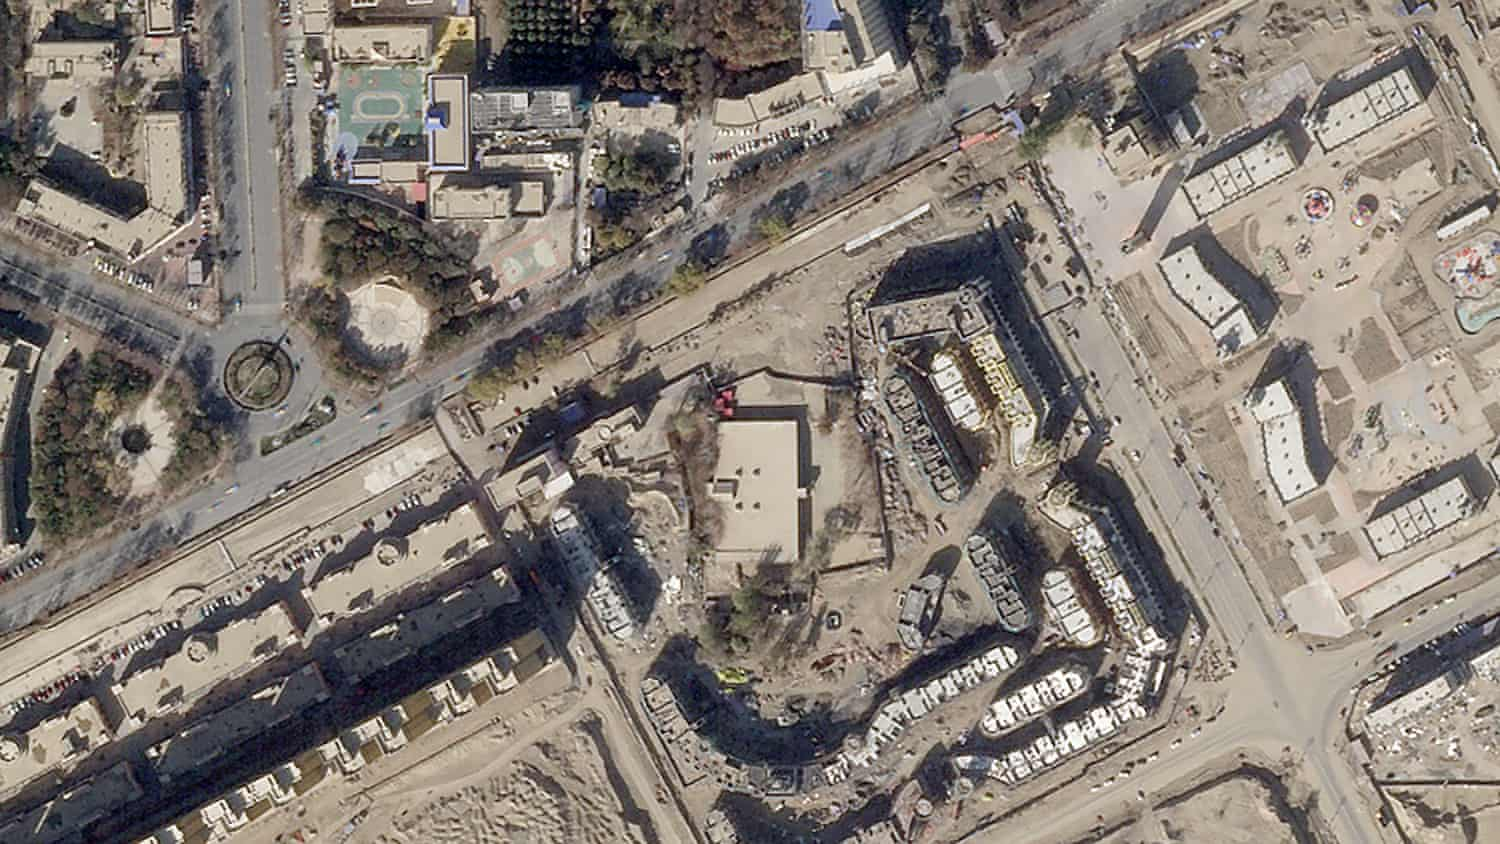 Revealed: new evidence of China's mission to raze the mosques of Xinjiang